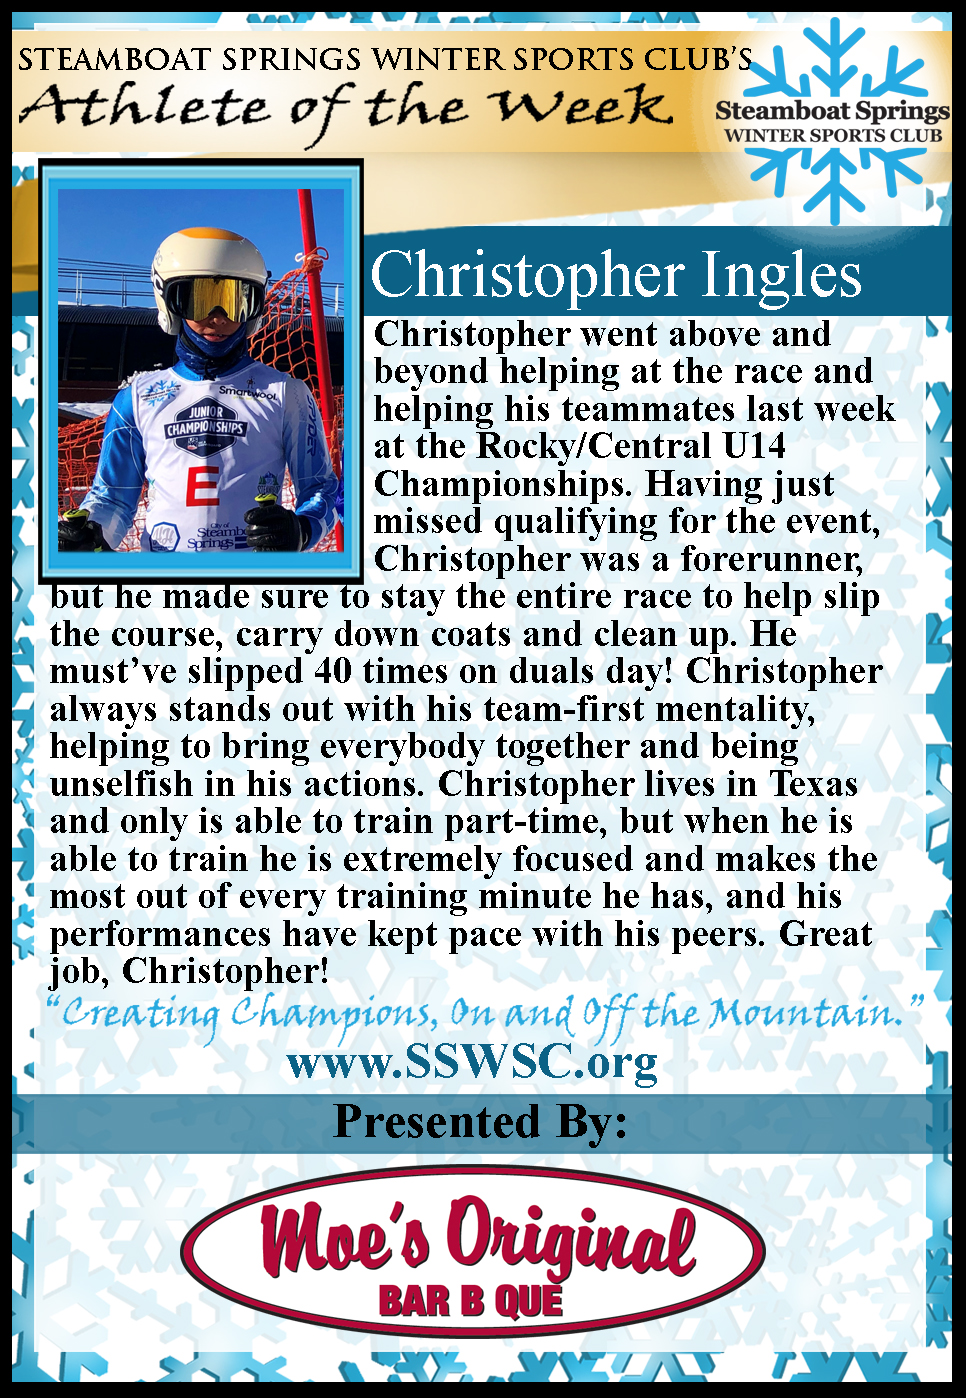 Athlete of the Week, Christopher Ingles